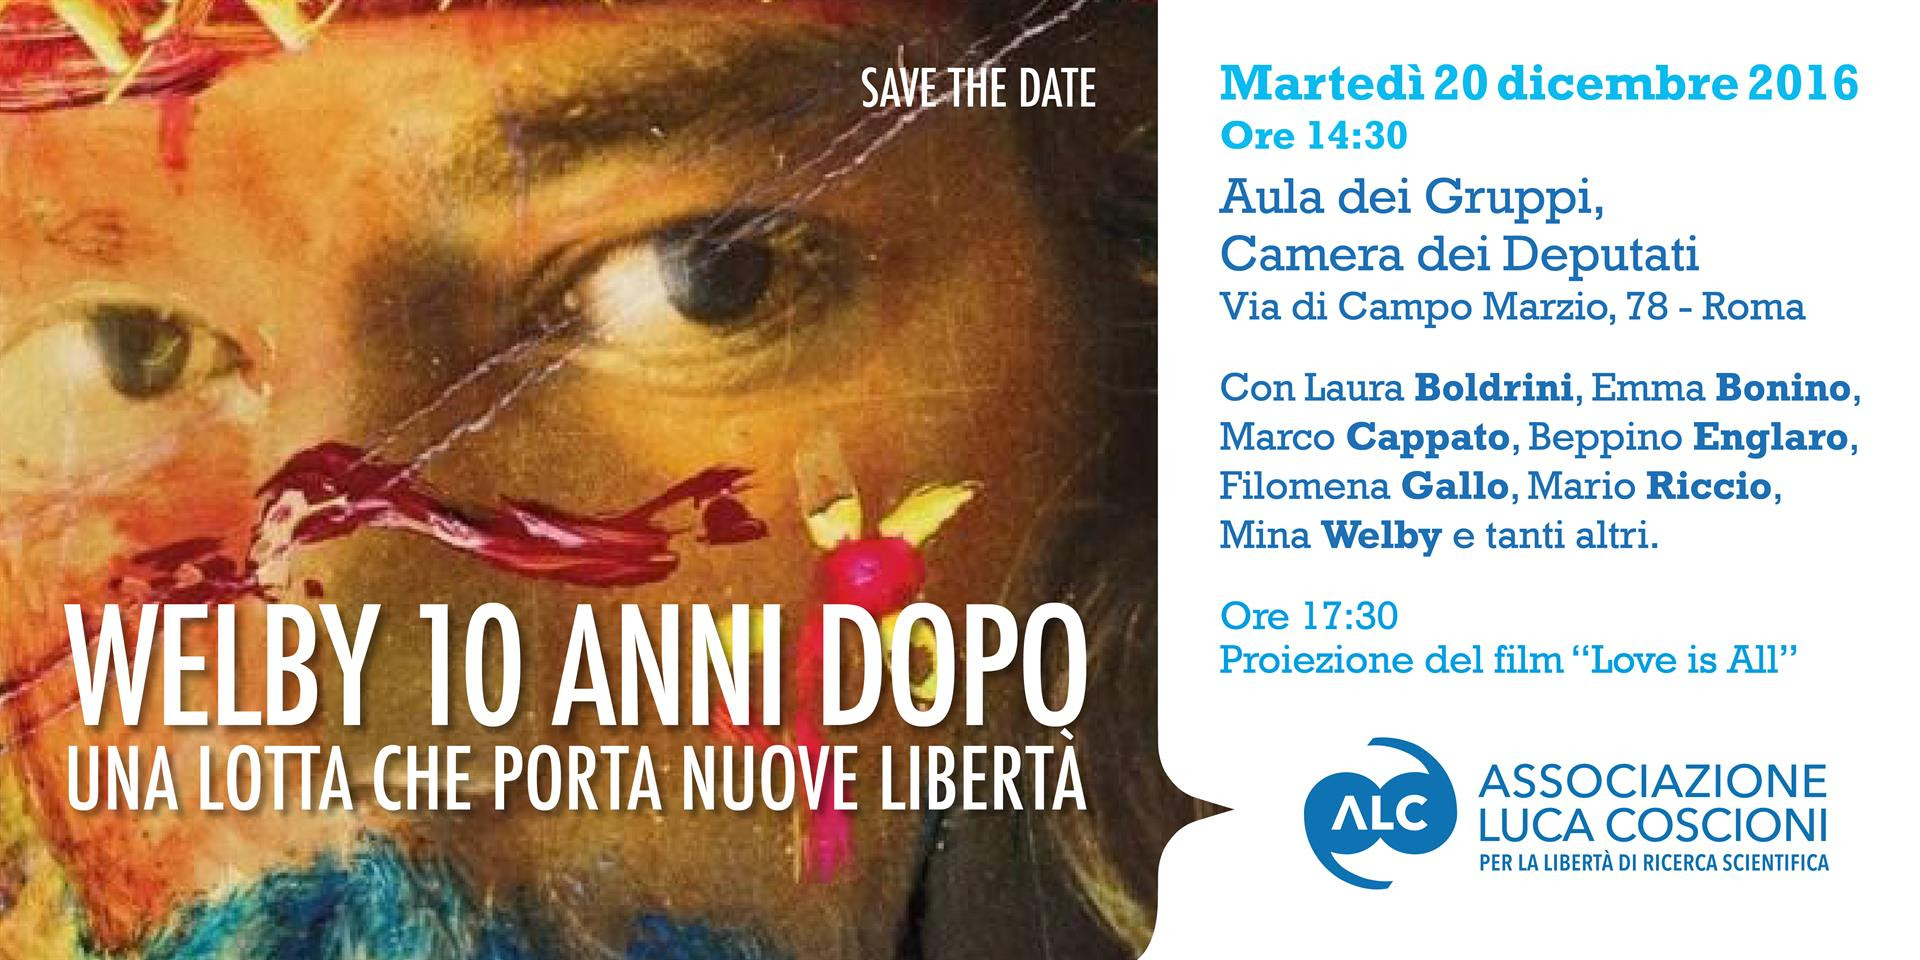 Save the date | 20 dicembre 2016 ore 14.30